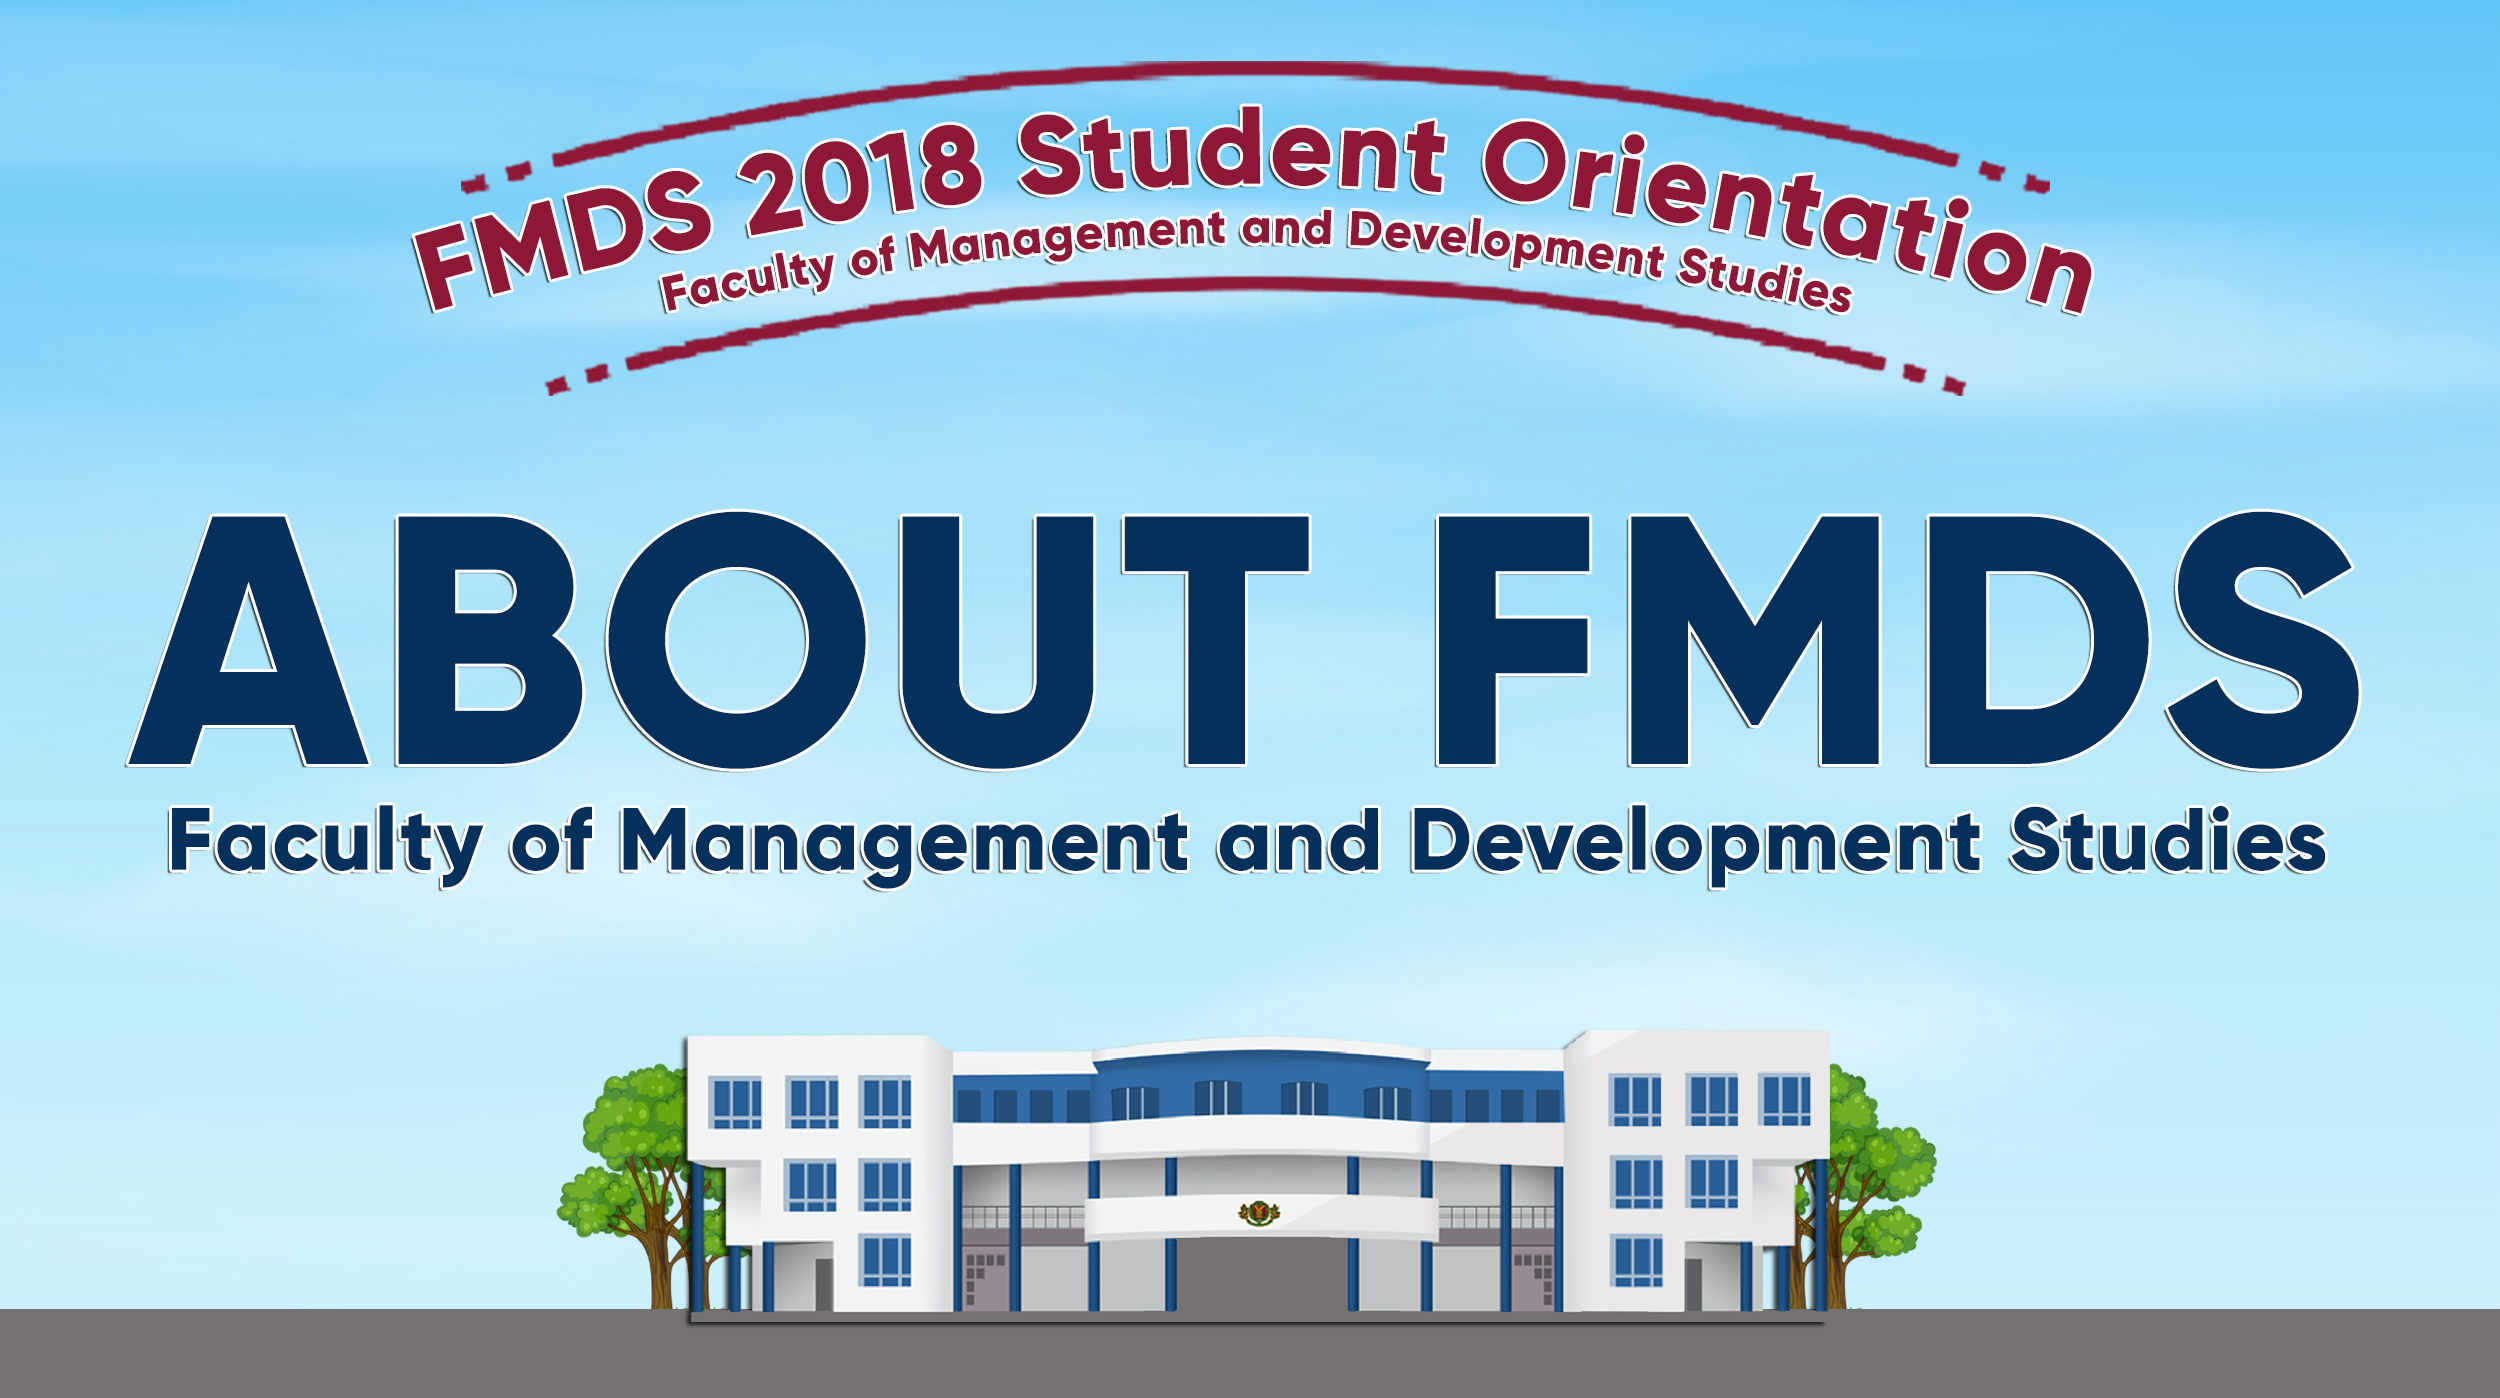 The Faculty of Management and Development Studies (FMDS)